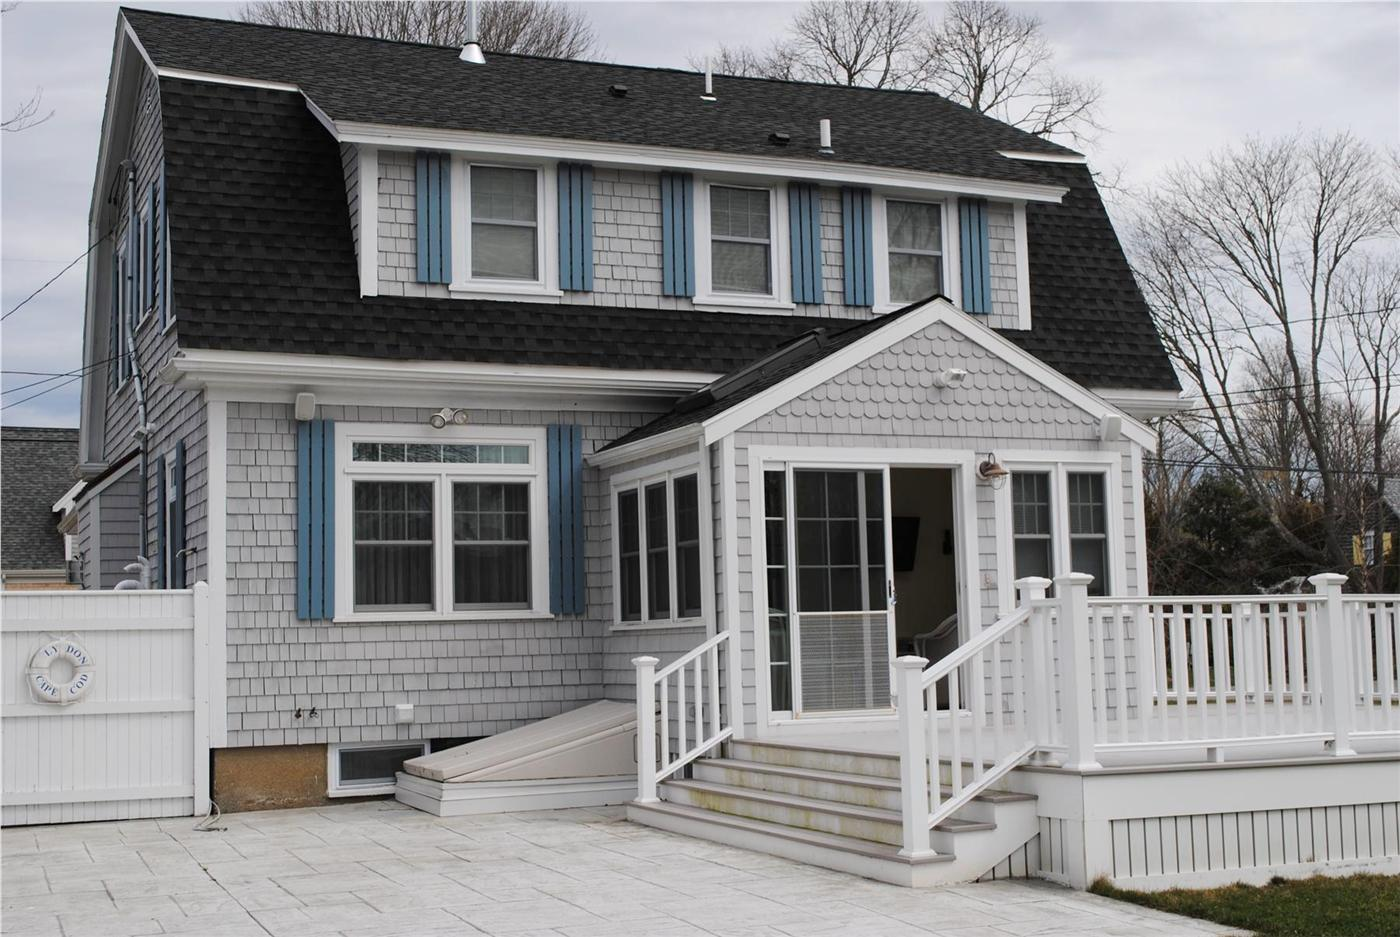 Falmouth Vacation Rental Home In Cape Cod Ma 02540 8 Miles To Surf Drive Beach Id 21666